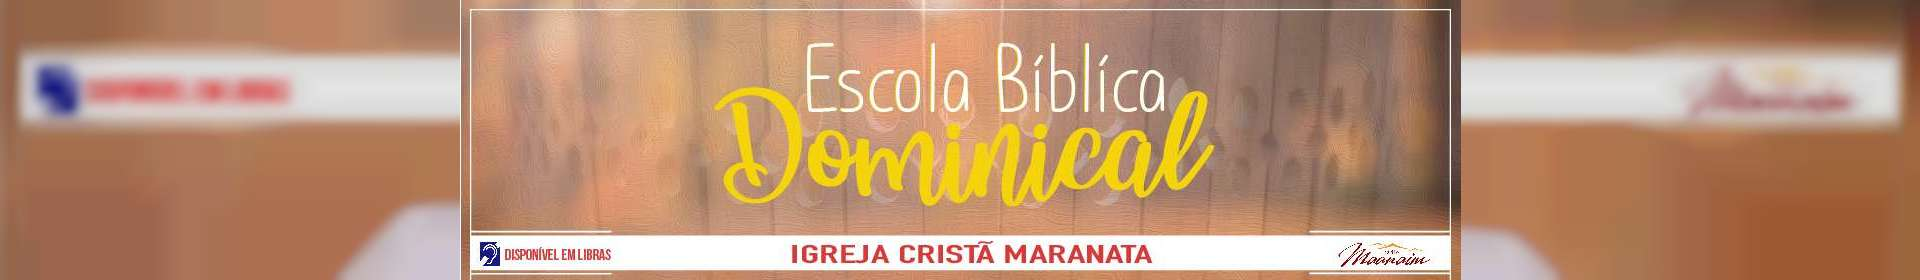 Escola Bíblica Dominical - 26/05/2019